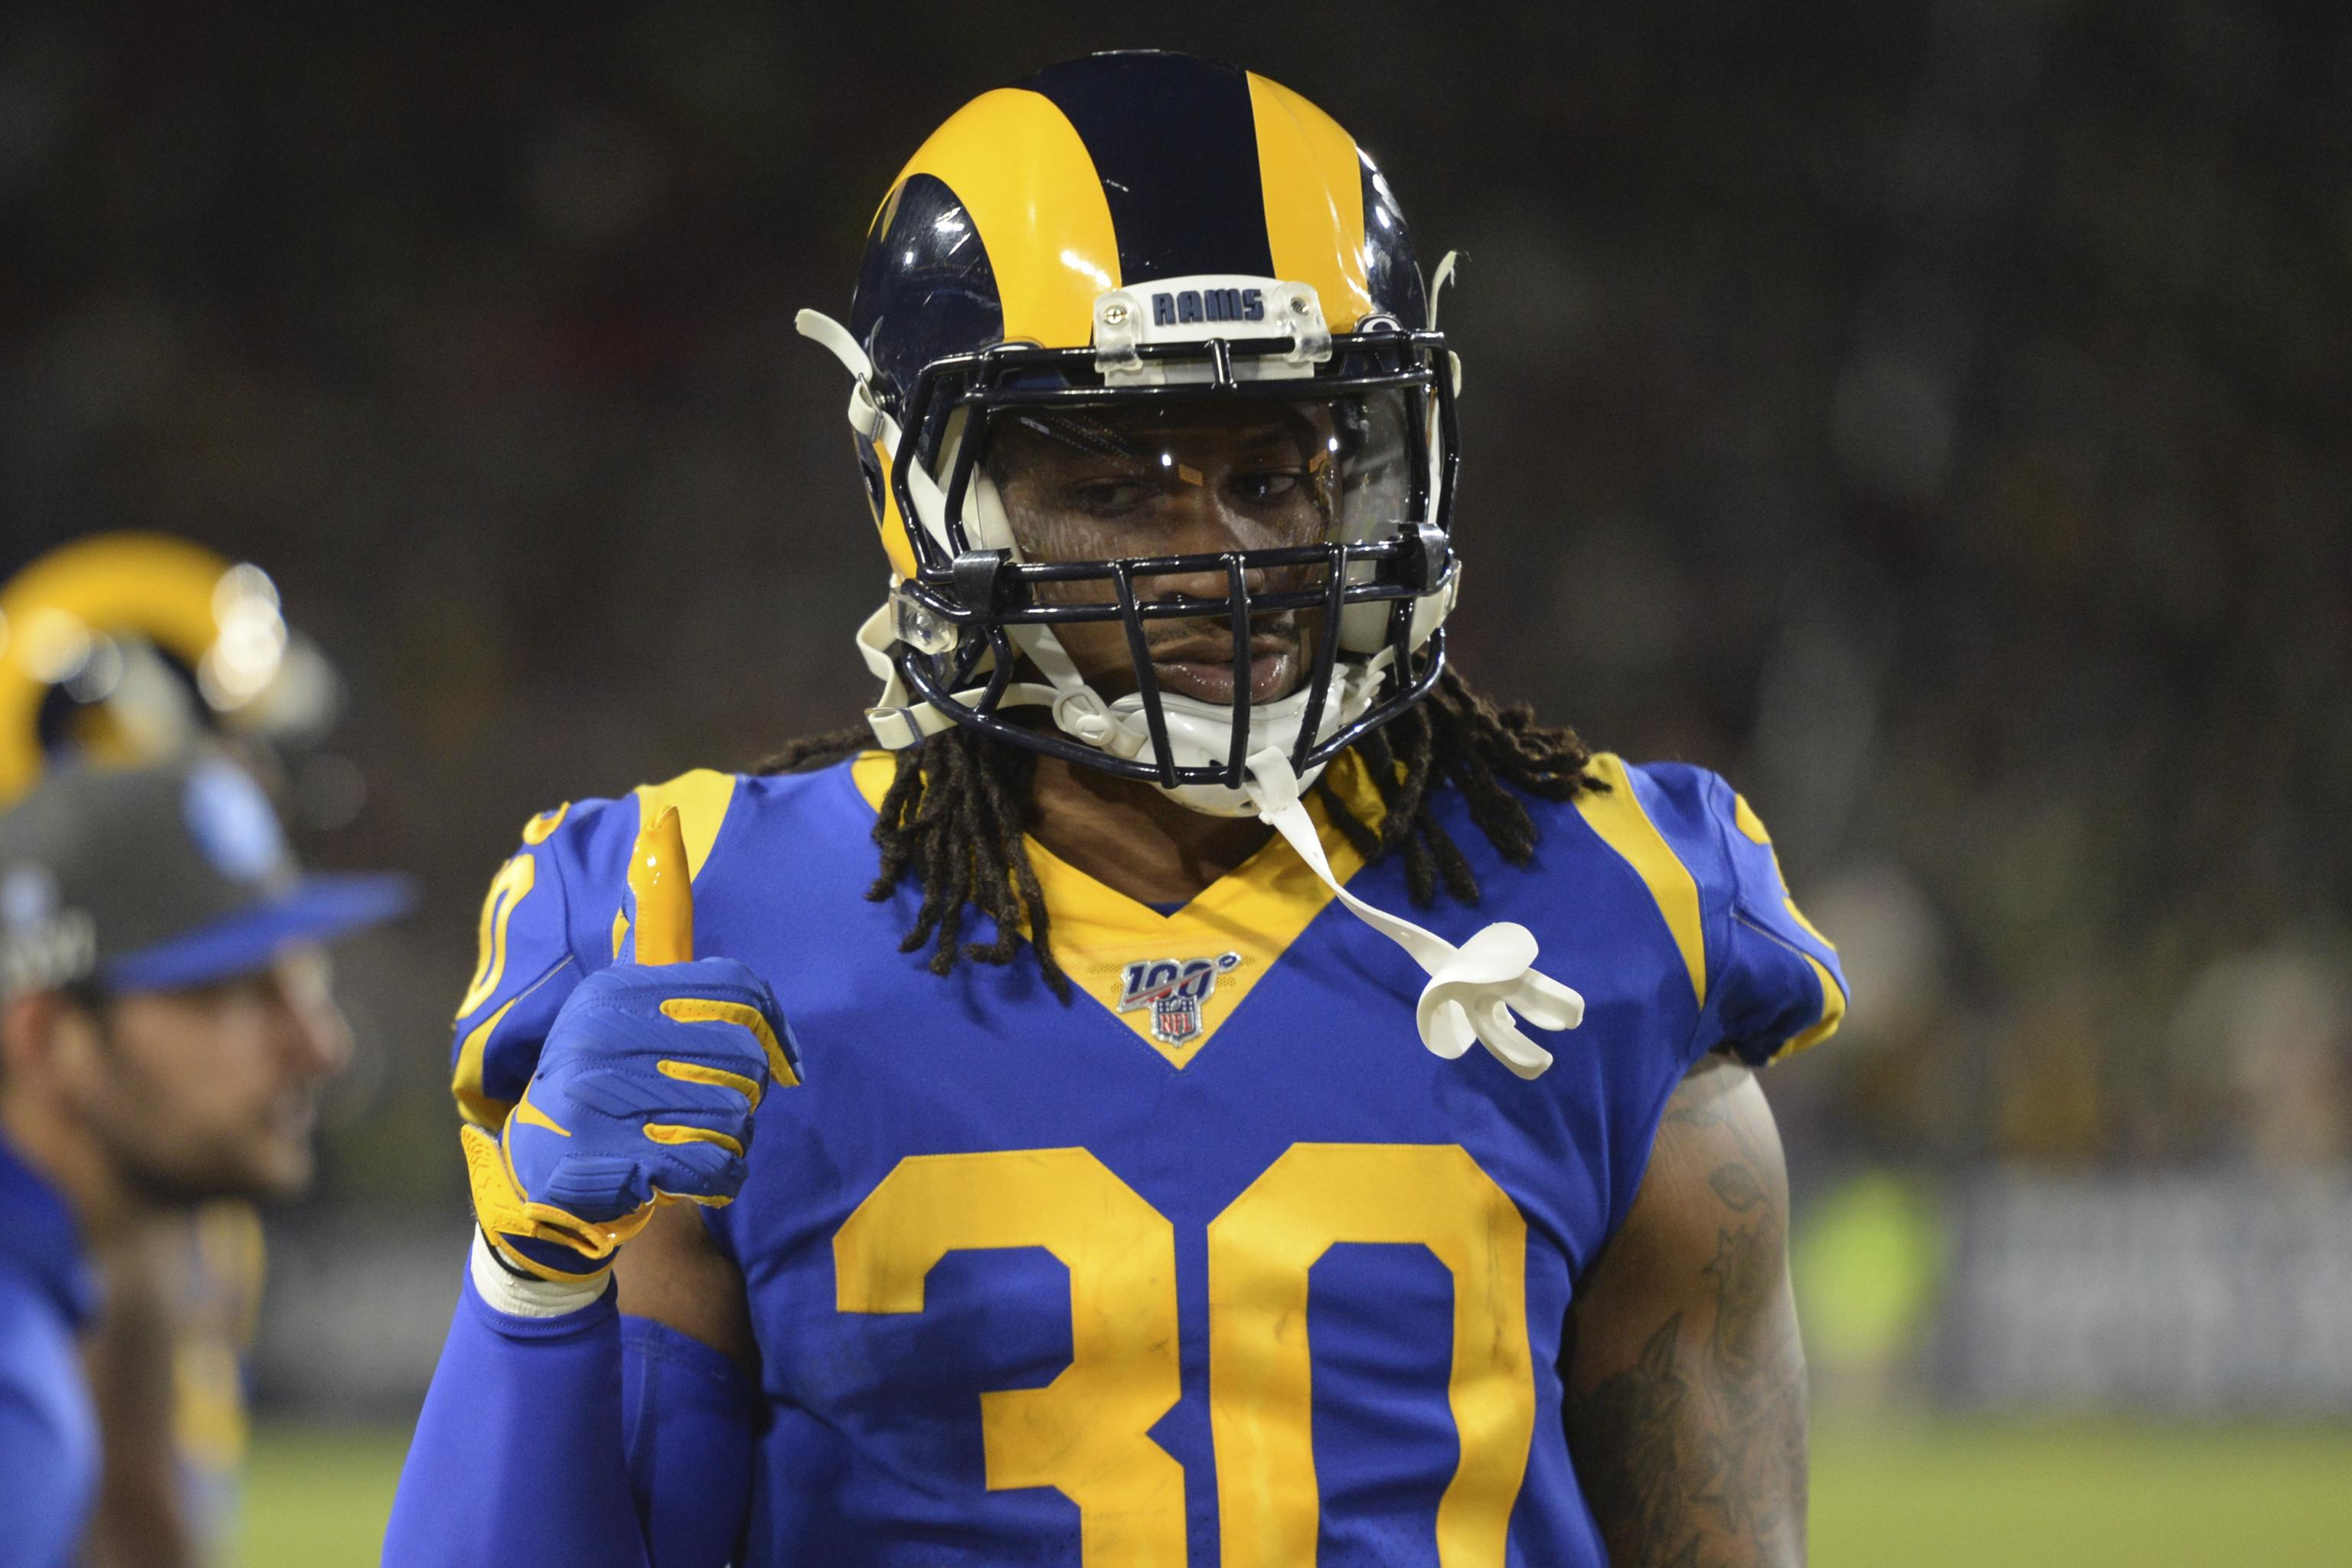 Falcons Updated Depth Chart After Signing Todd Gurley To 1 Year Contract Bleacher Report Latest News Videos And Highlights